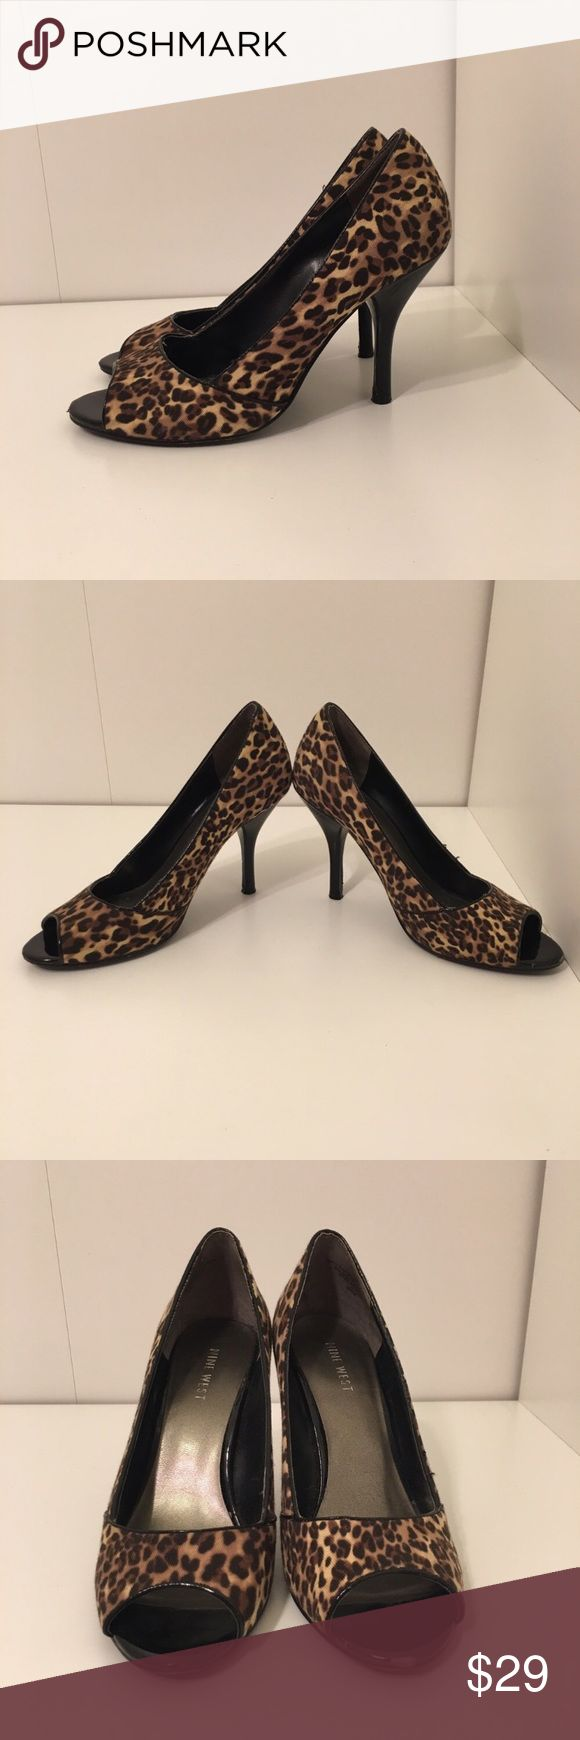 Nine West cheetah heels This pair of cheetah print heels are designed by Nine West. Great condition! No stians. Signs of wear. See images Shoes Heels